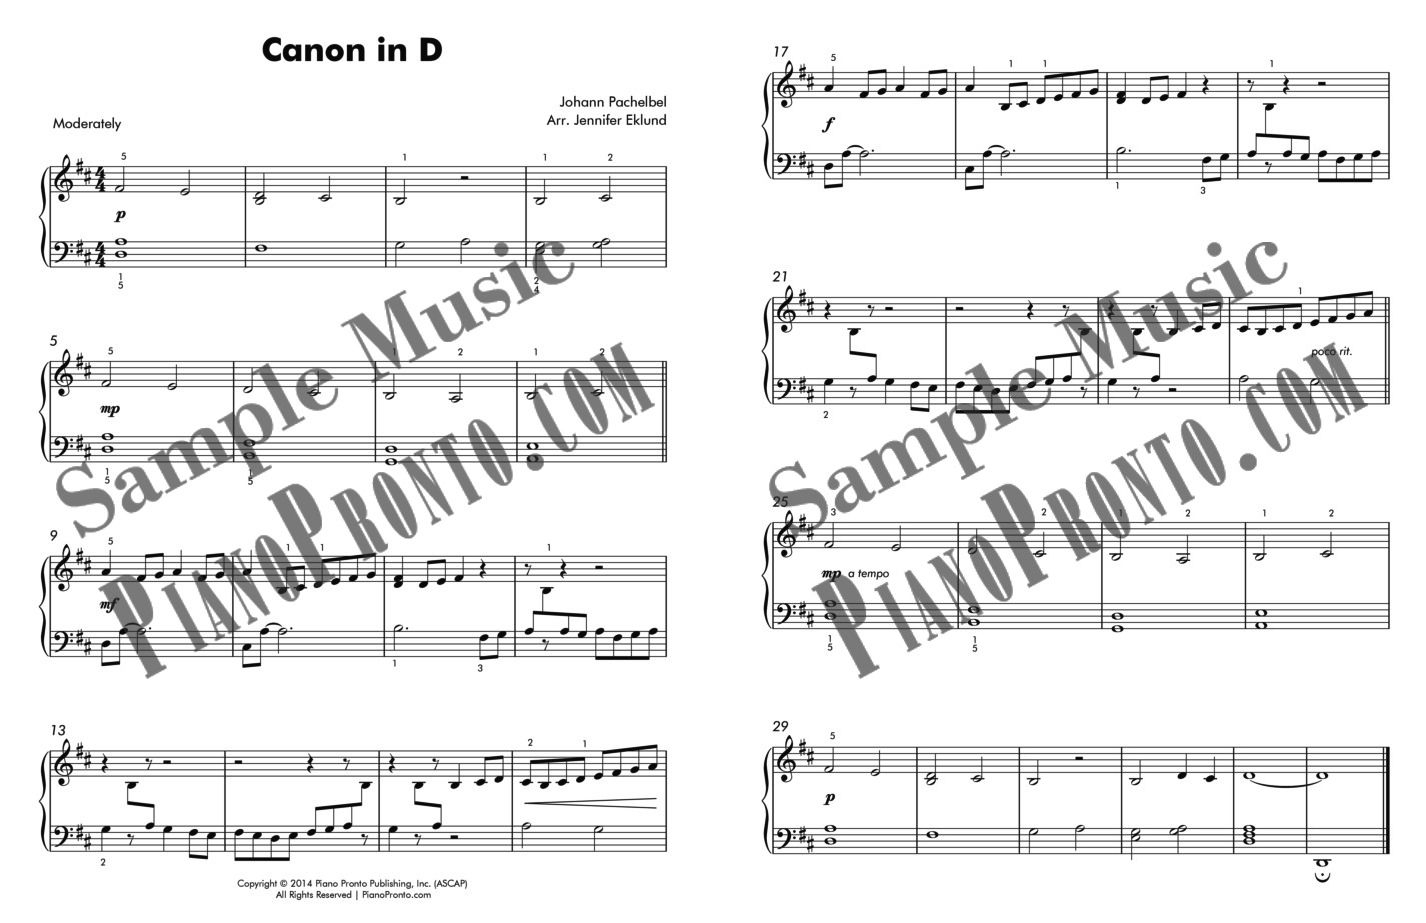 Canon In D - Easy Piano Version   Sheet Music   Piano Pronto Publishing - Canon In D Piano Sheet Music Free Printable